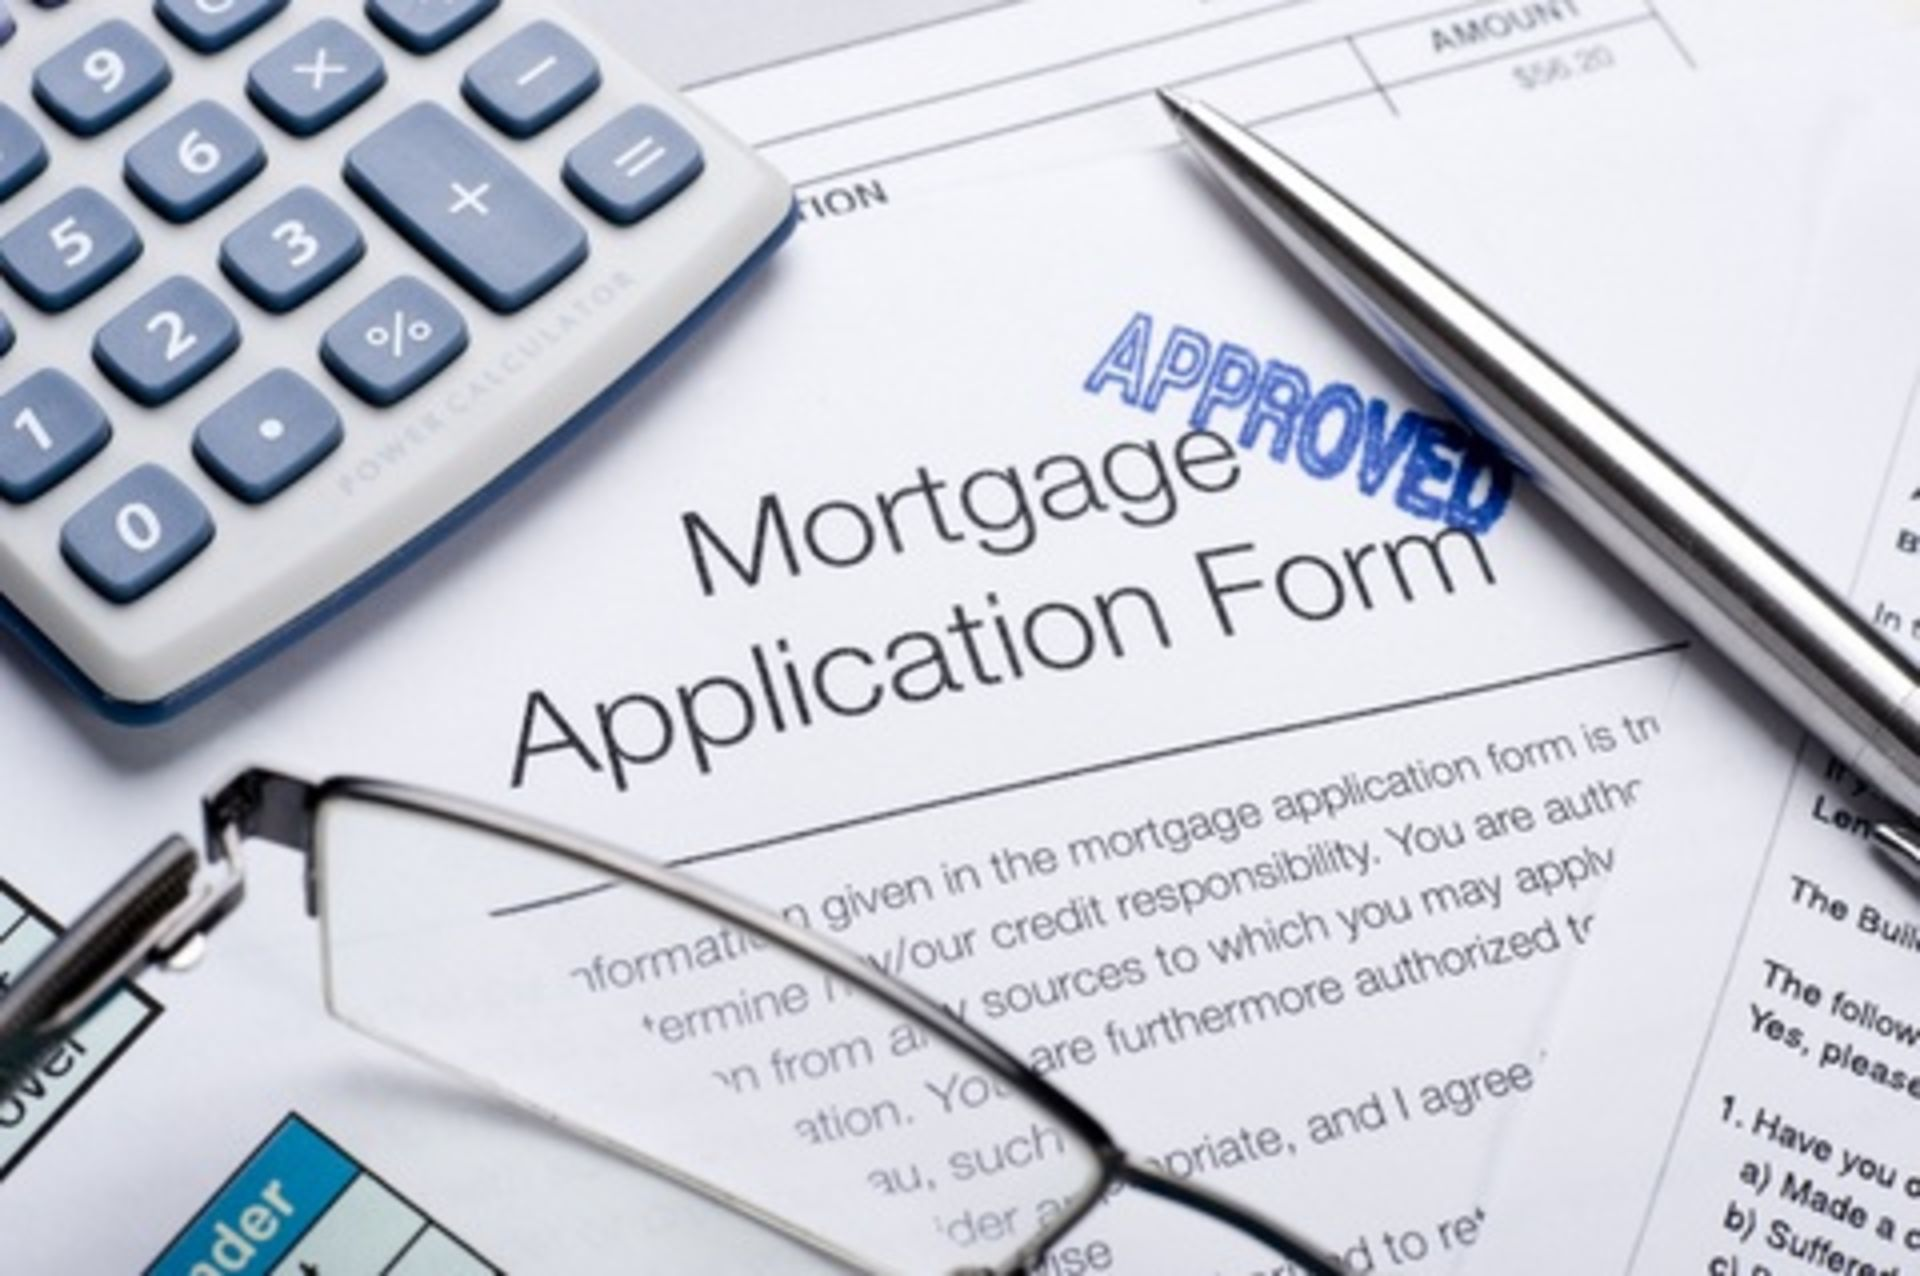 APPLYING FOR A MORTGAGE IN LAS CRUCES? READ OUR 8 TIPS